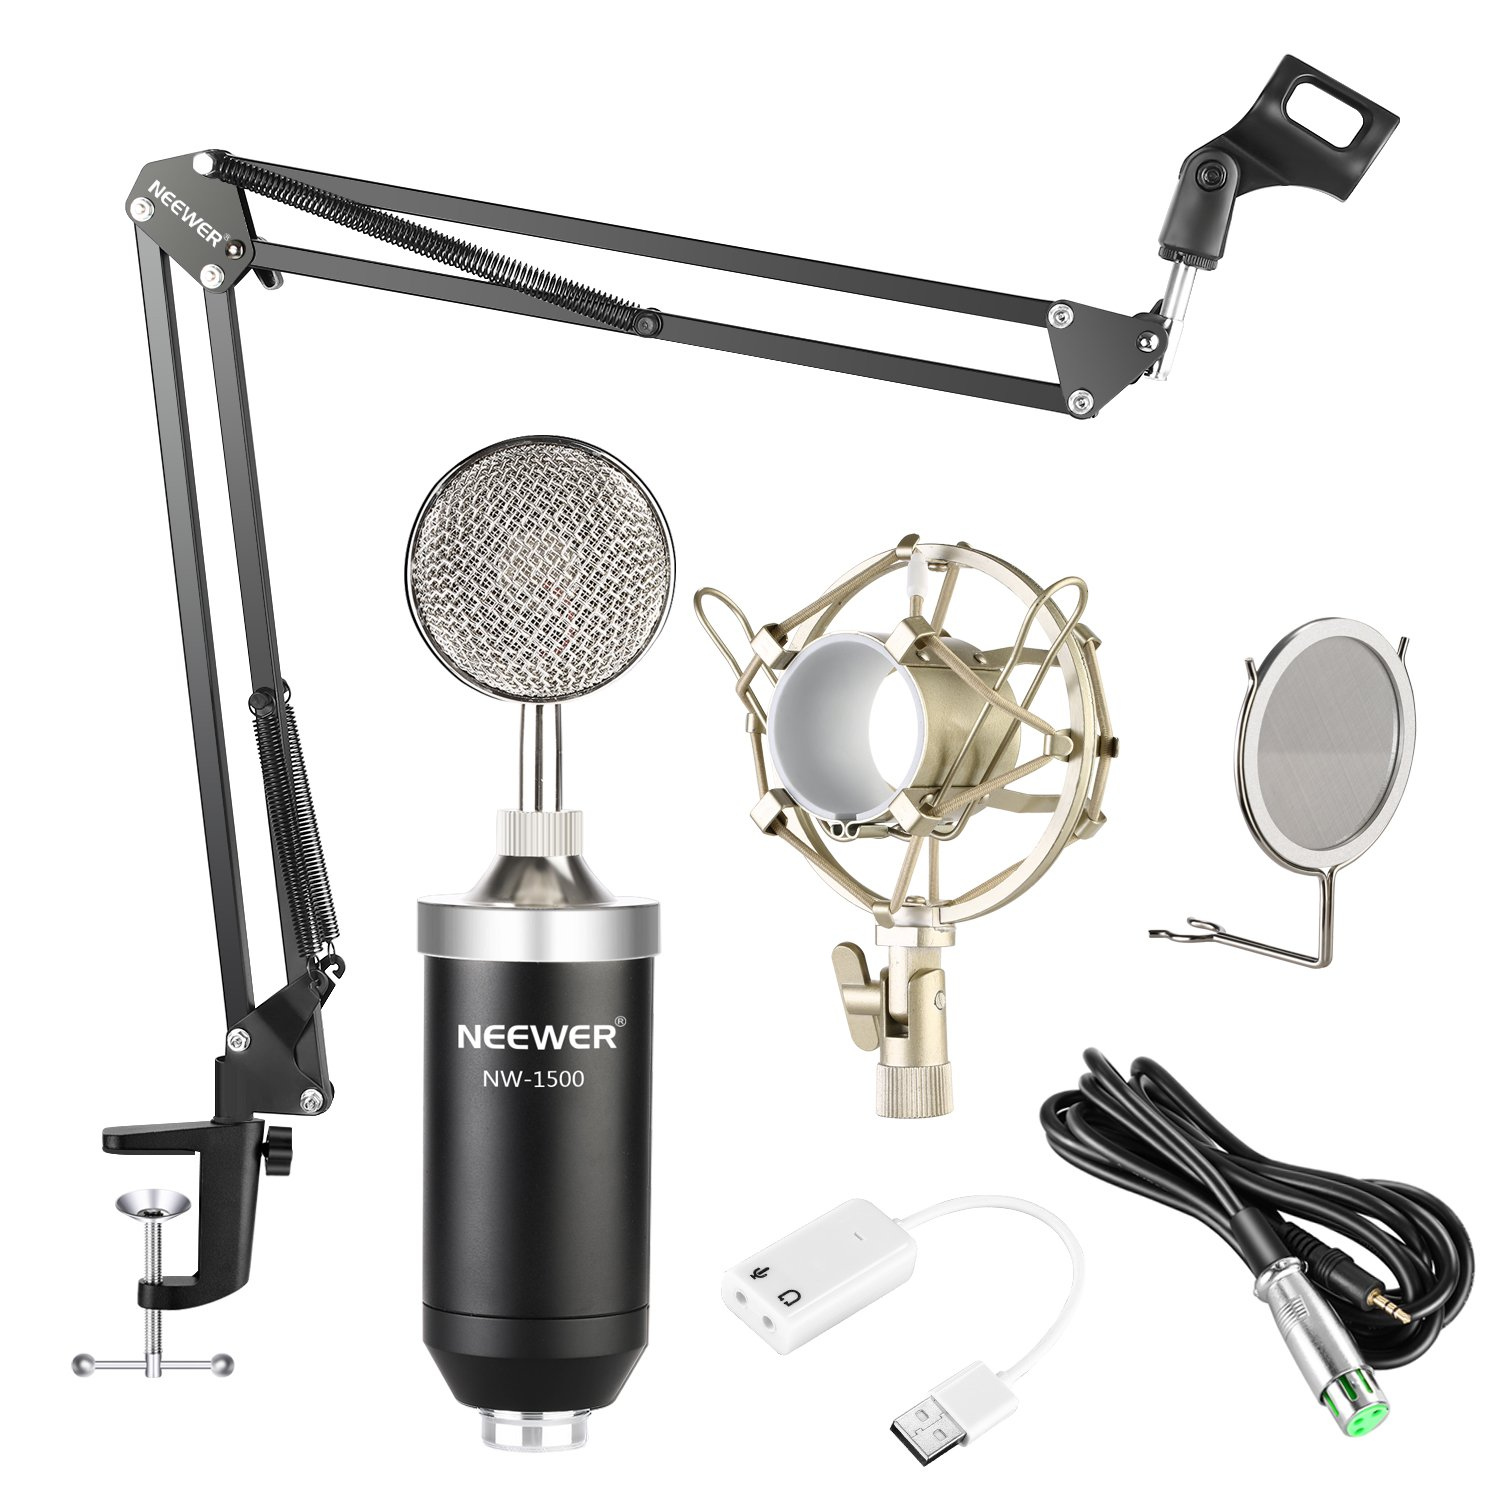 Neewer NW-1500 Professional Studio Condenser Microphone Kit with USB Sound Card, Shock Mount, Mic Suspension Scissor Arm Stand, Pop Filter for Computer Recording Broadcast YouTube(Black and Silver) 40093343